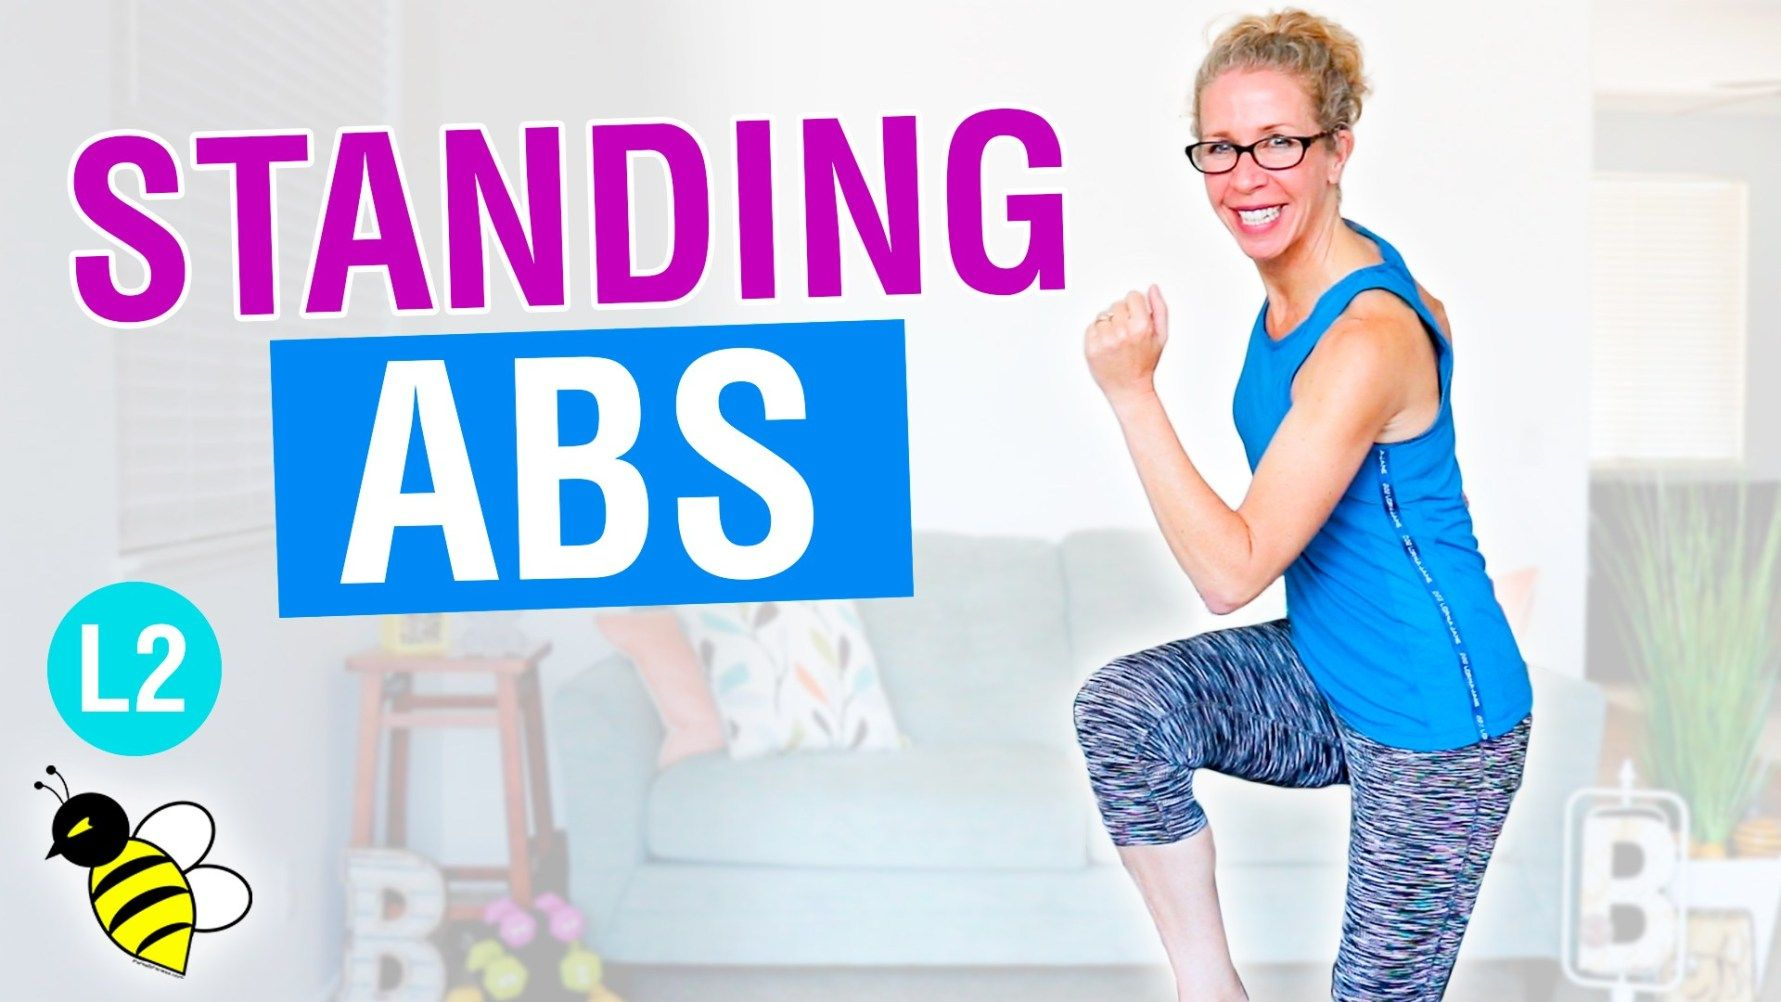 10 minute STANDING ABS HIIT | Standing abs, Standing ab ... Oblique Exercises Abe